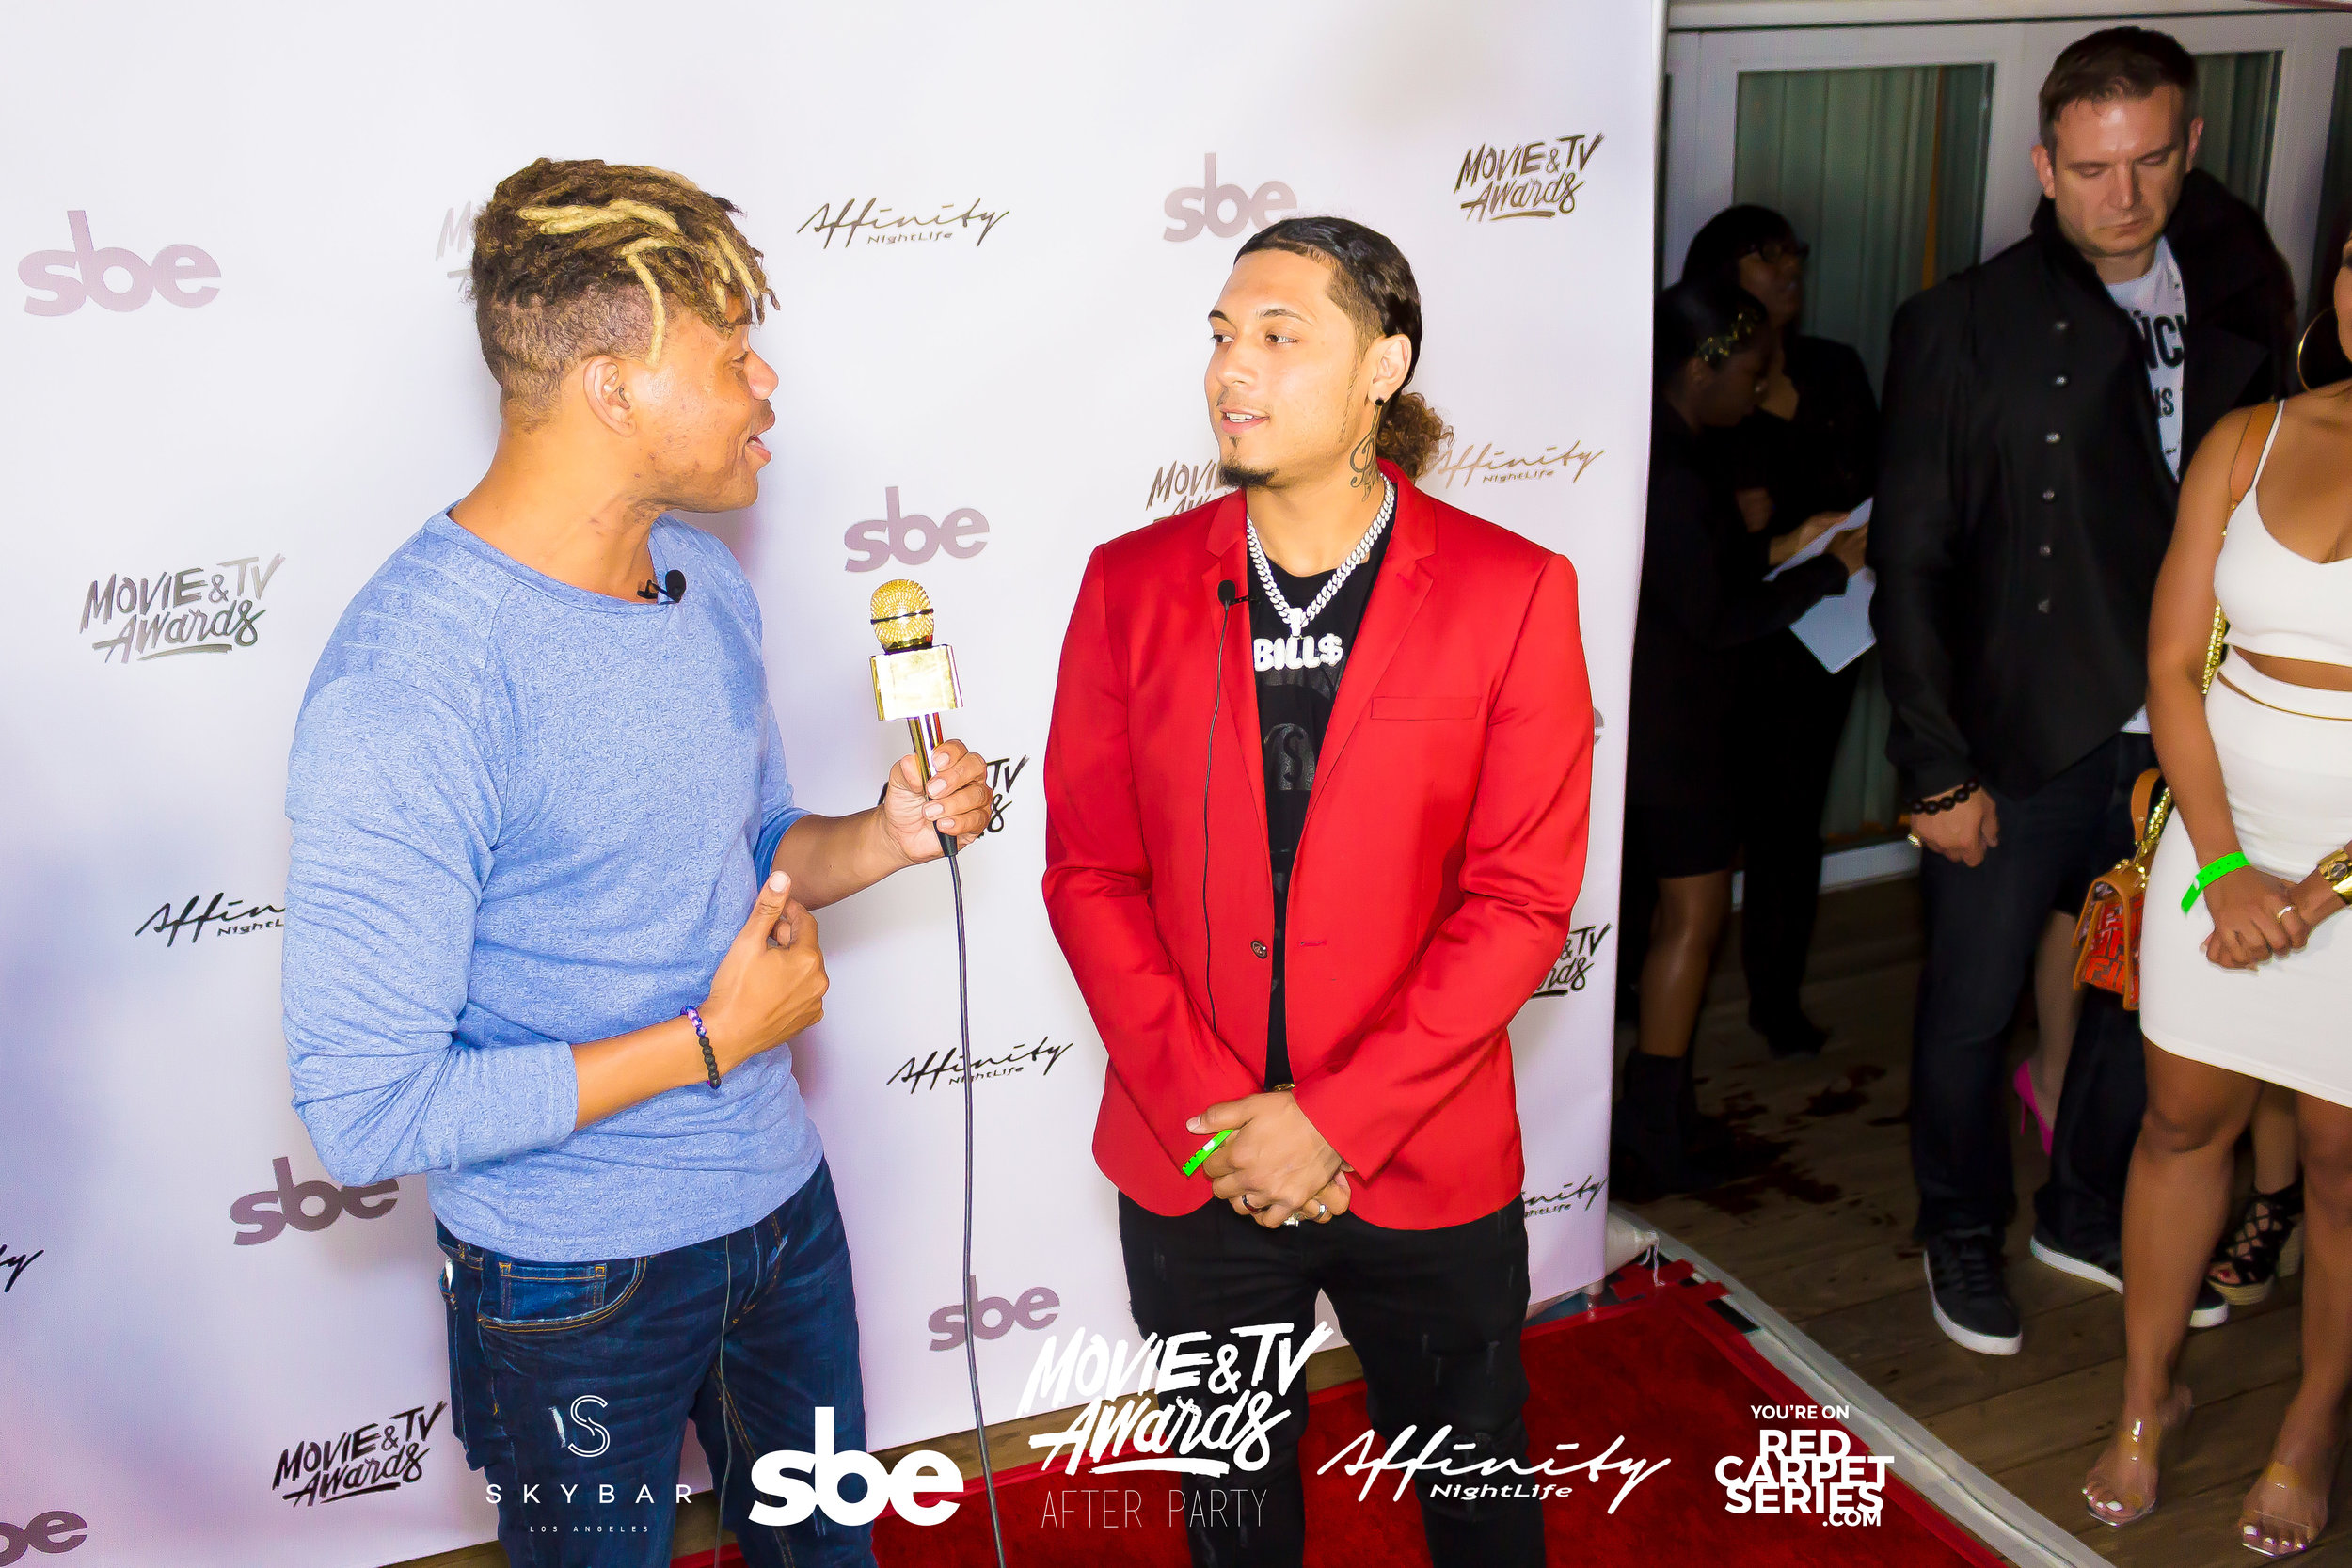 Affinity Nightlife MTV Movie & TV Awards After Party - Skybar at Mondrian - 06-15-19 - Vol. 1_53.jpg